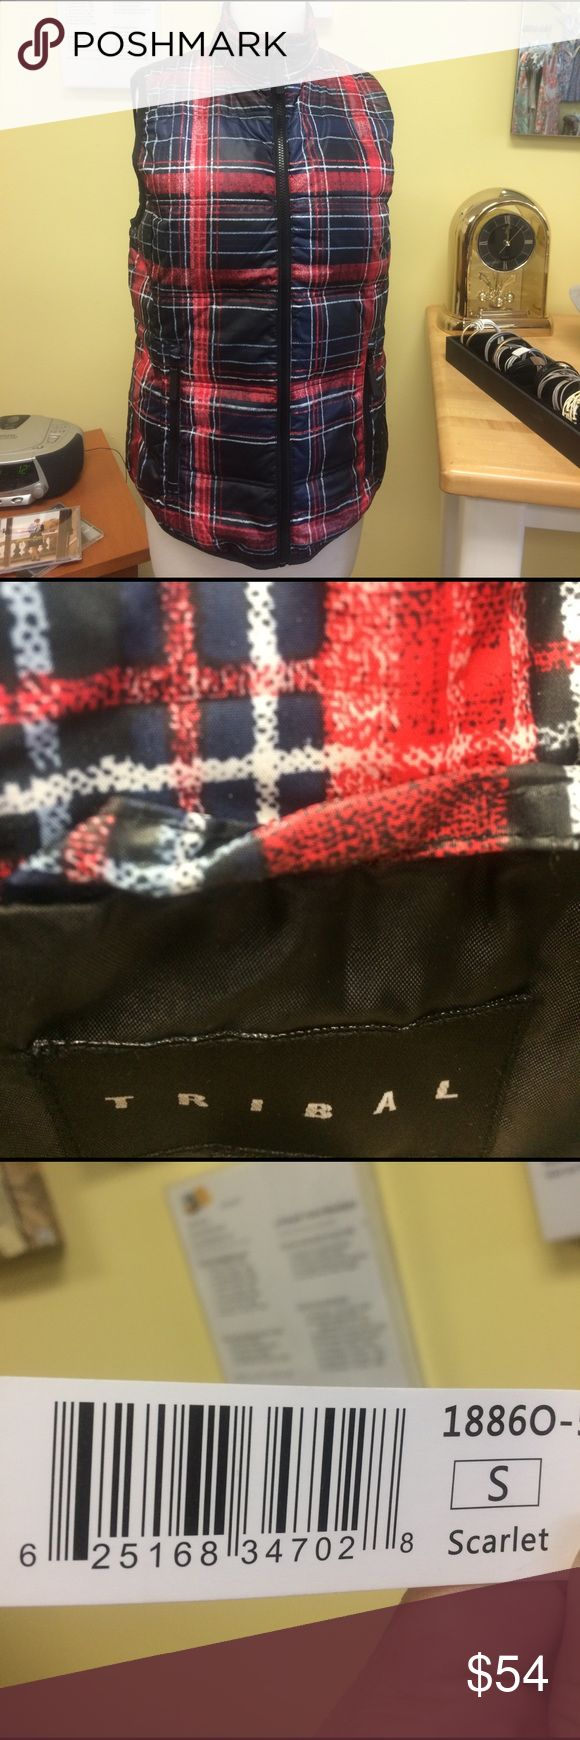 NWT Retail. Our Down vest by Tribal Sportswear NWT Retail. Our down vest for Tribal Sportswear of Canada. Print name: scarlet plaid.  A contemporary take on plaid who love a good trend that works ! Zip front pockets. Machine wash cold.  Regularly priced at $128. Often priced higher in ski locations. Tribal Sportswear of Canada Jackets & Coats Vests